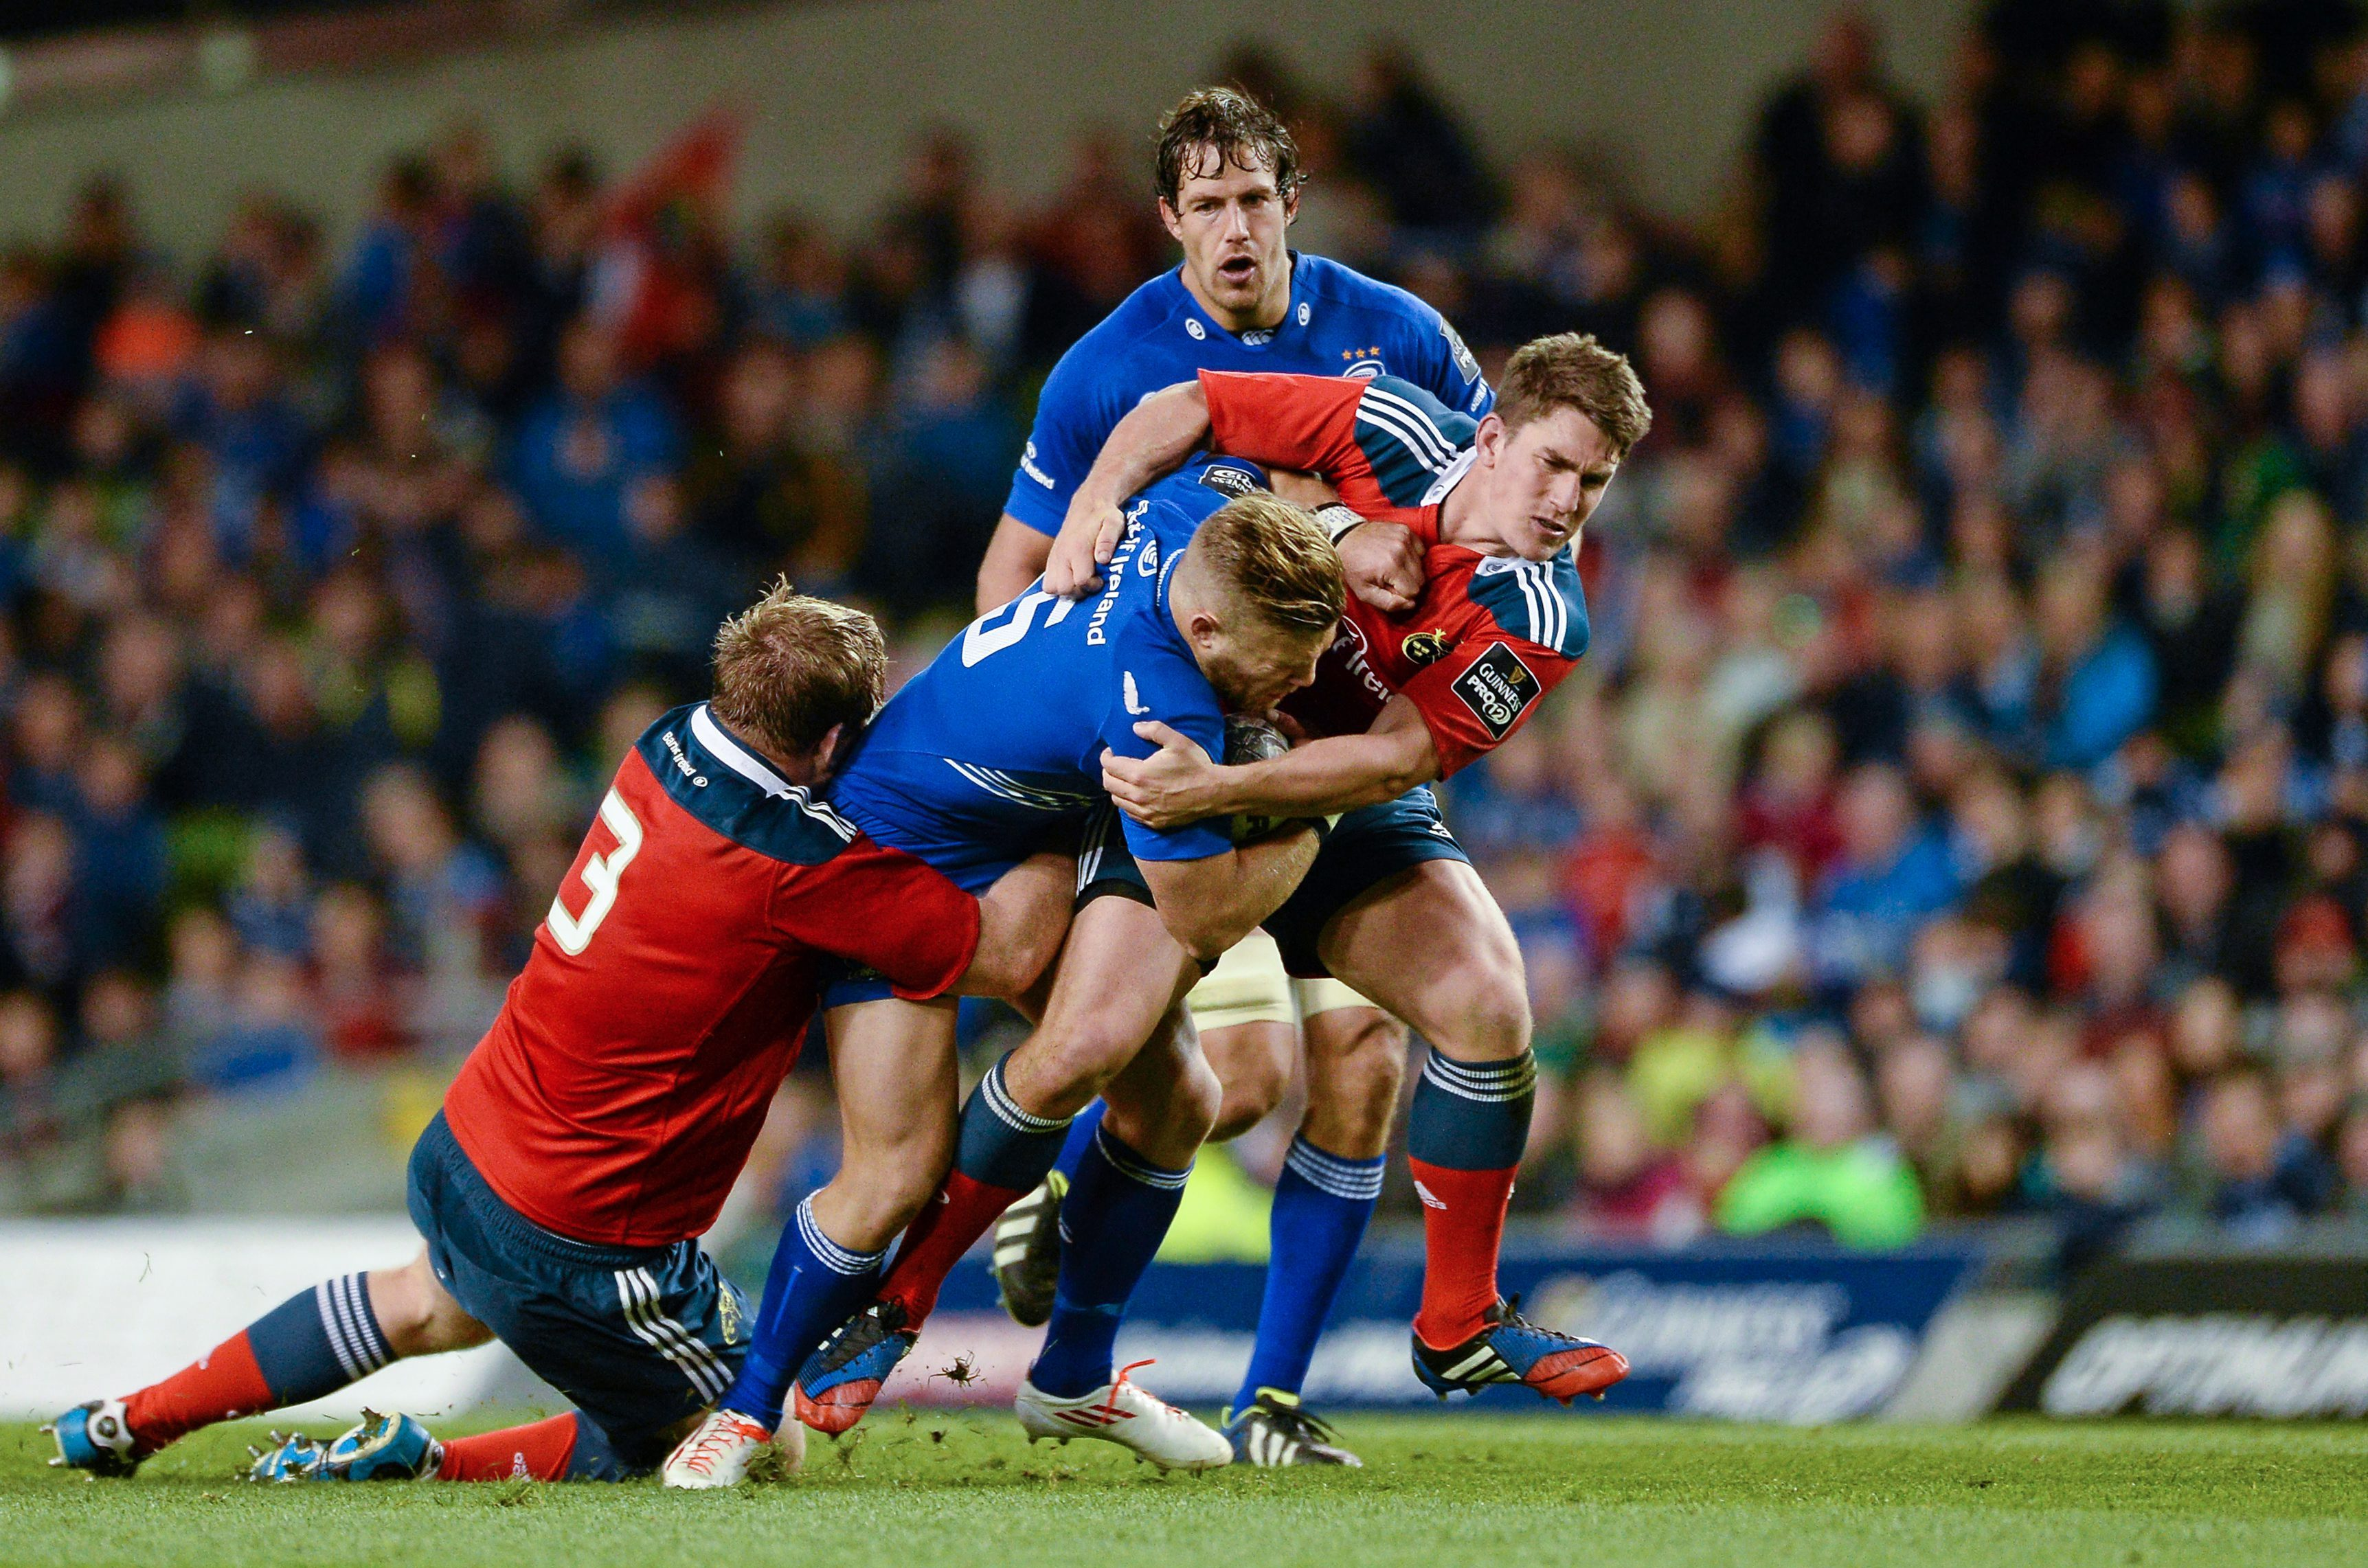 Leinster Rugby | Leinster v Munster: Our last five meetings at the Aviva